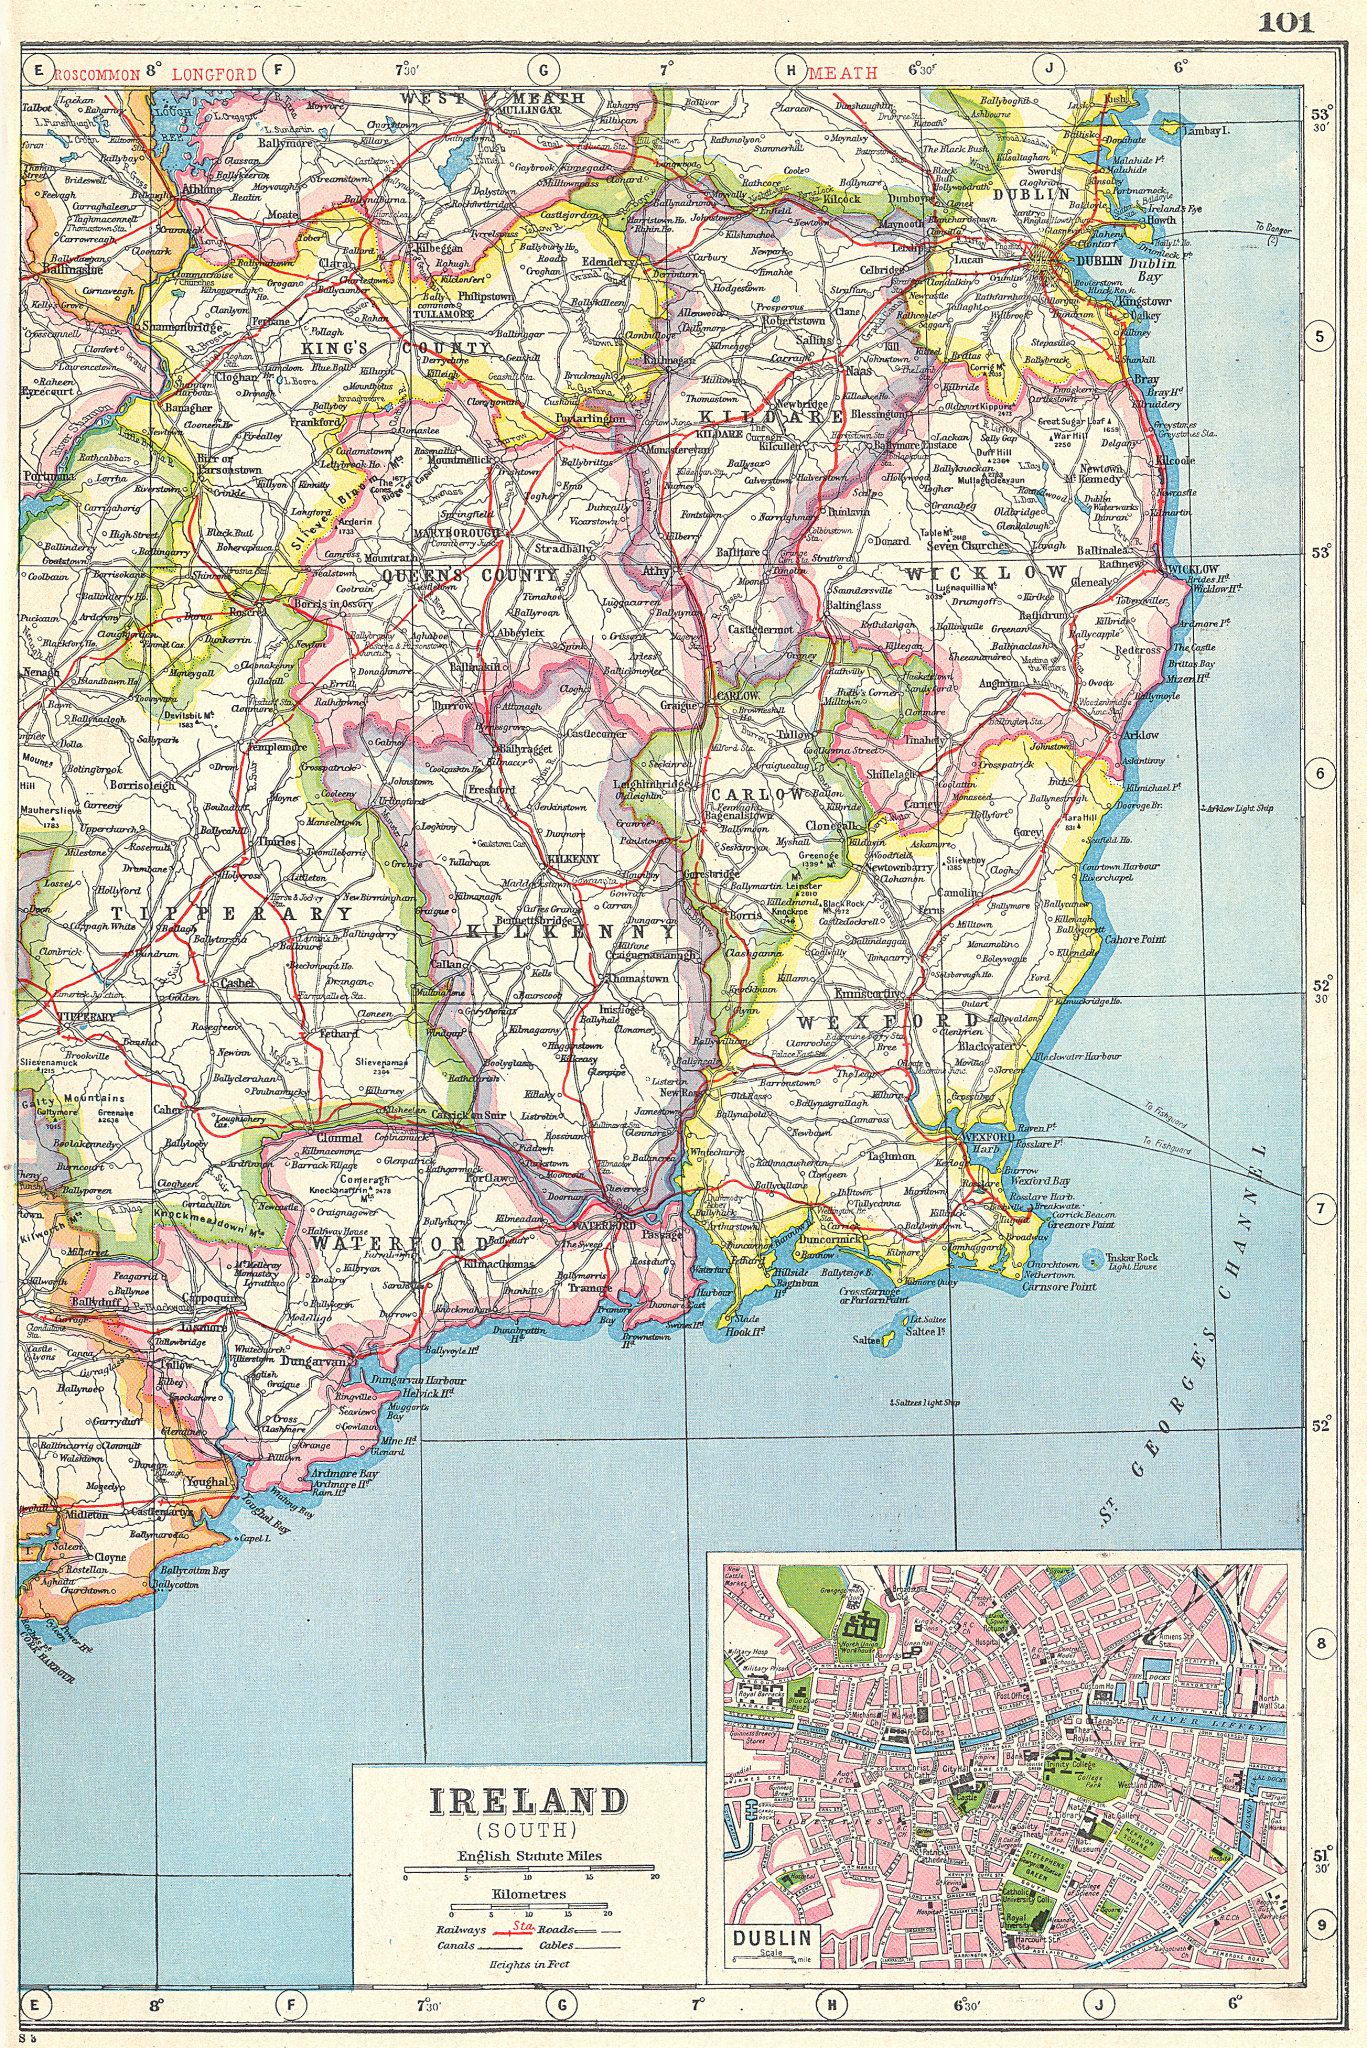 Associate Product IRELAND SOUTH EAST. Wexford Kilkenny Waterford Carlow &c. inset Dublin 1920 map